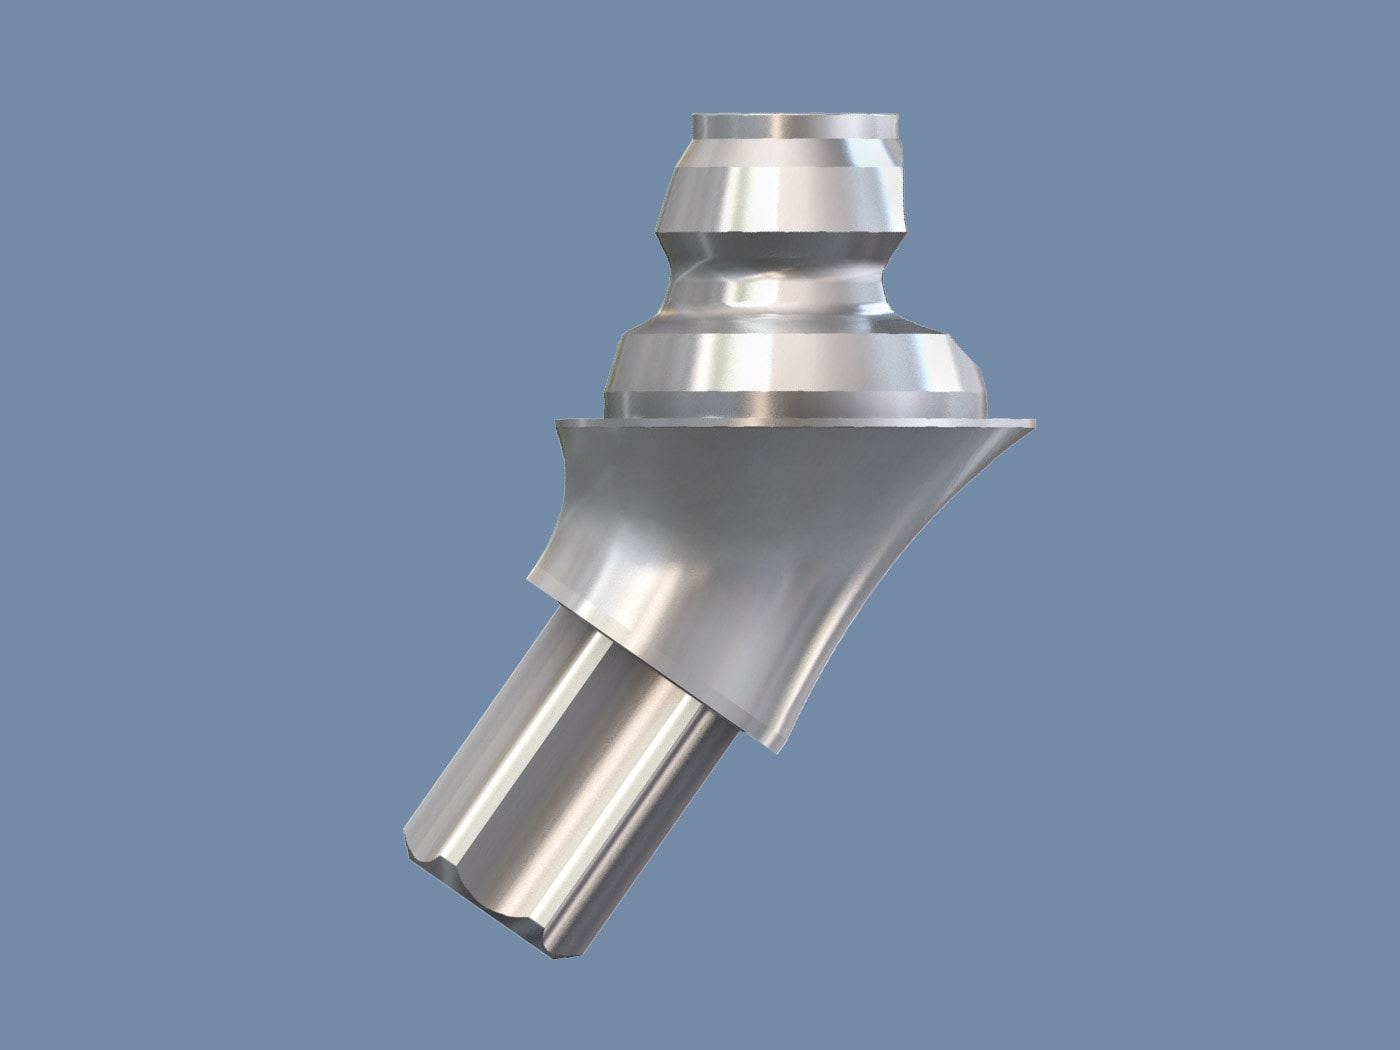 SKY fast&fixed tapered abutment